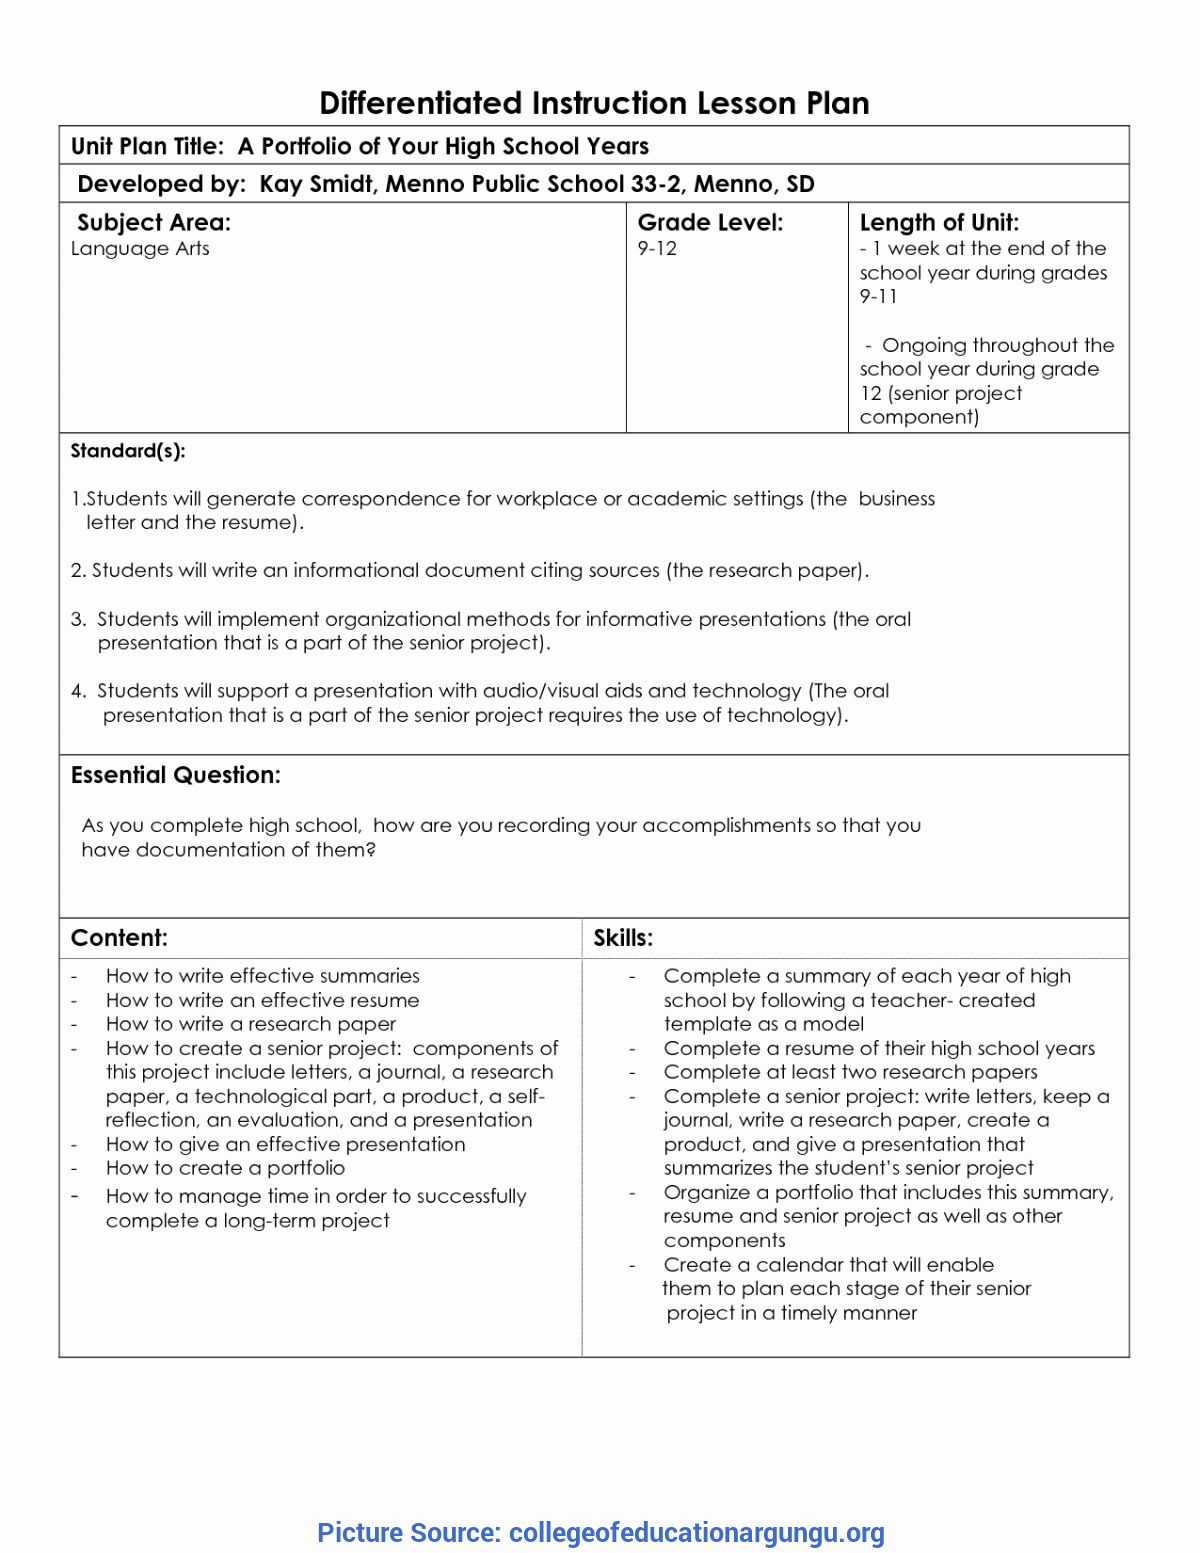 Differentiated Lesson Plan Template Luxury Excellent Differentiated Instruction Le Lesson Plan Templates Differentiated Instruction Differentiated Lesson Plans